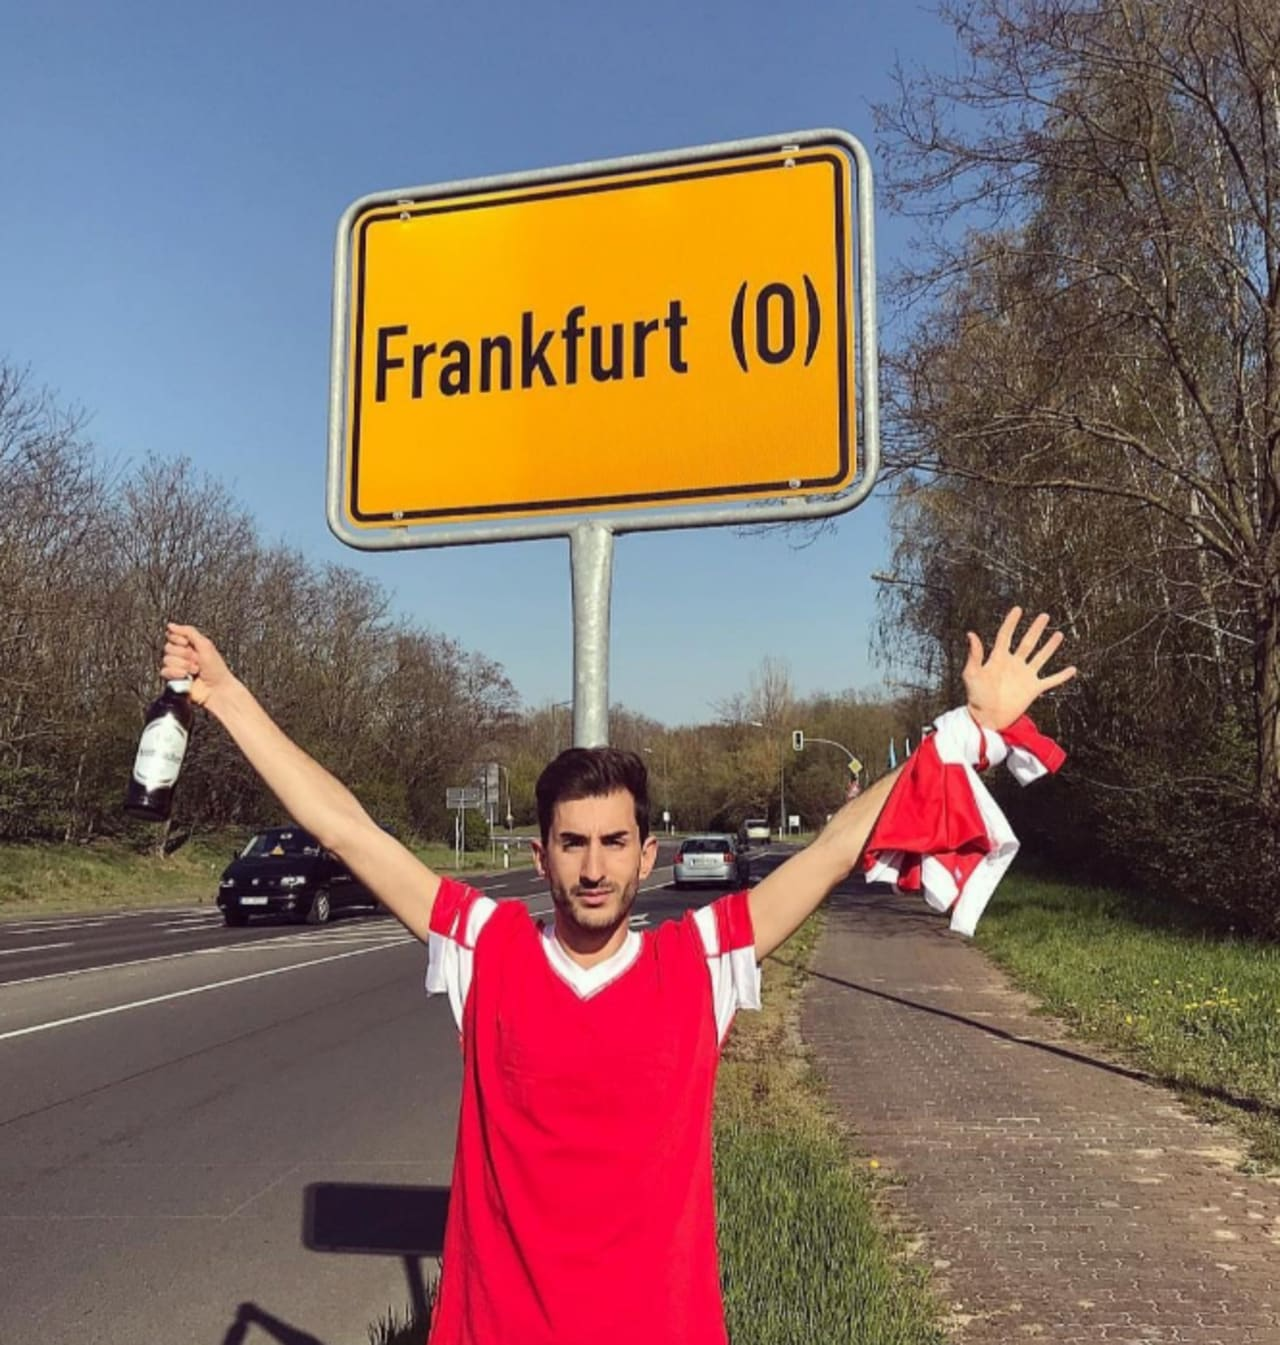 Benfica fans went to the wrong Frankfurt!